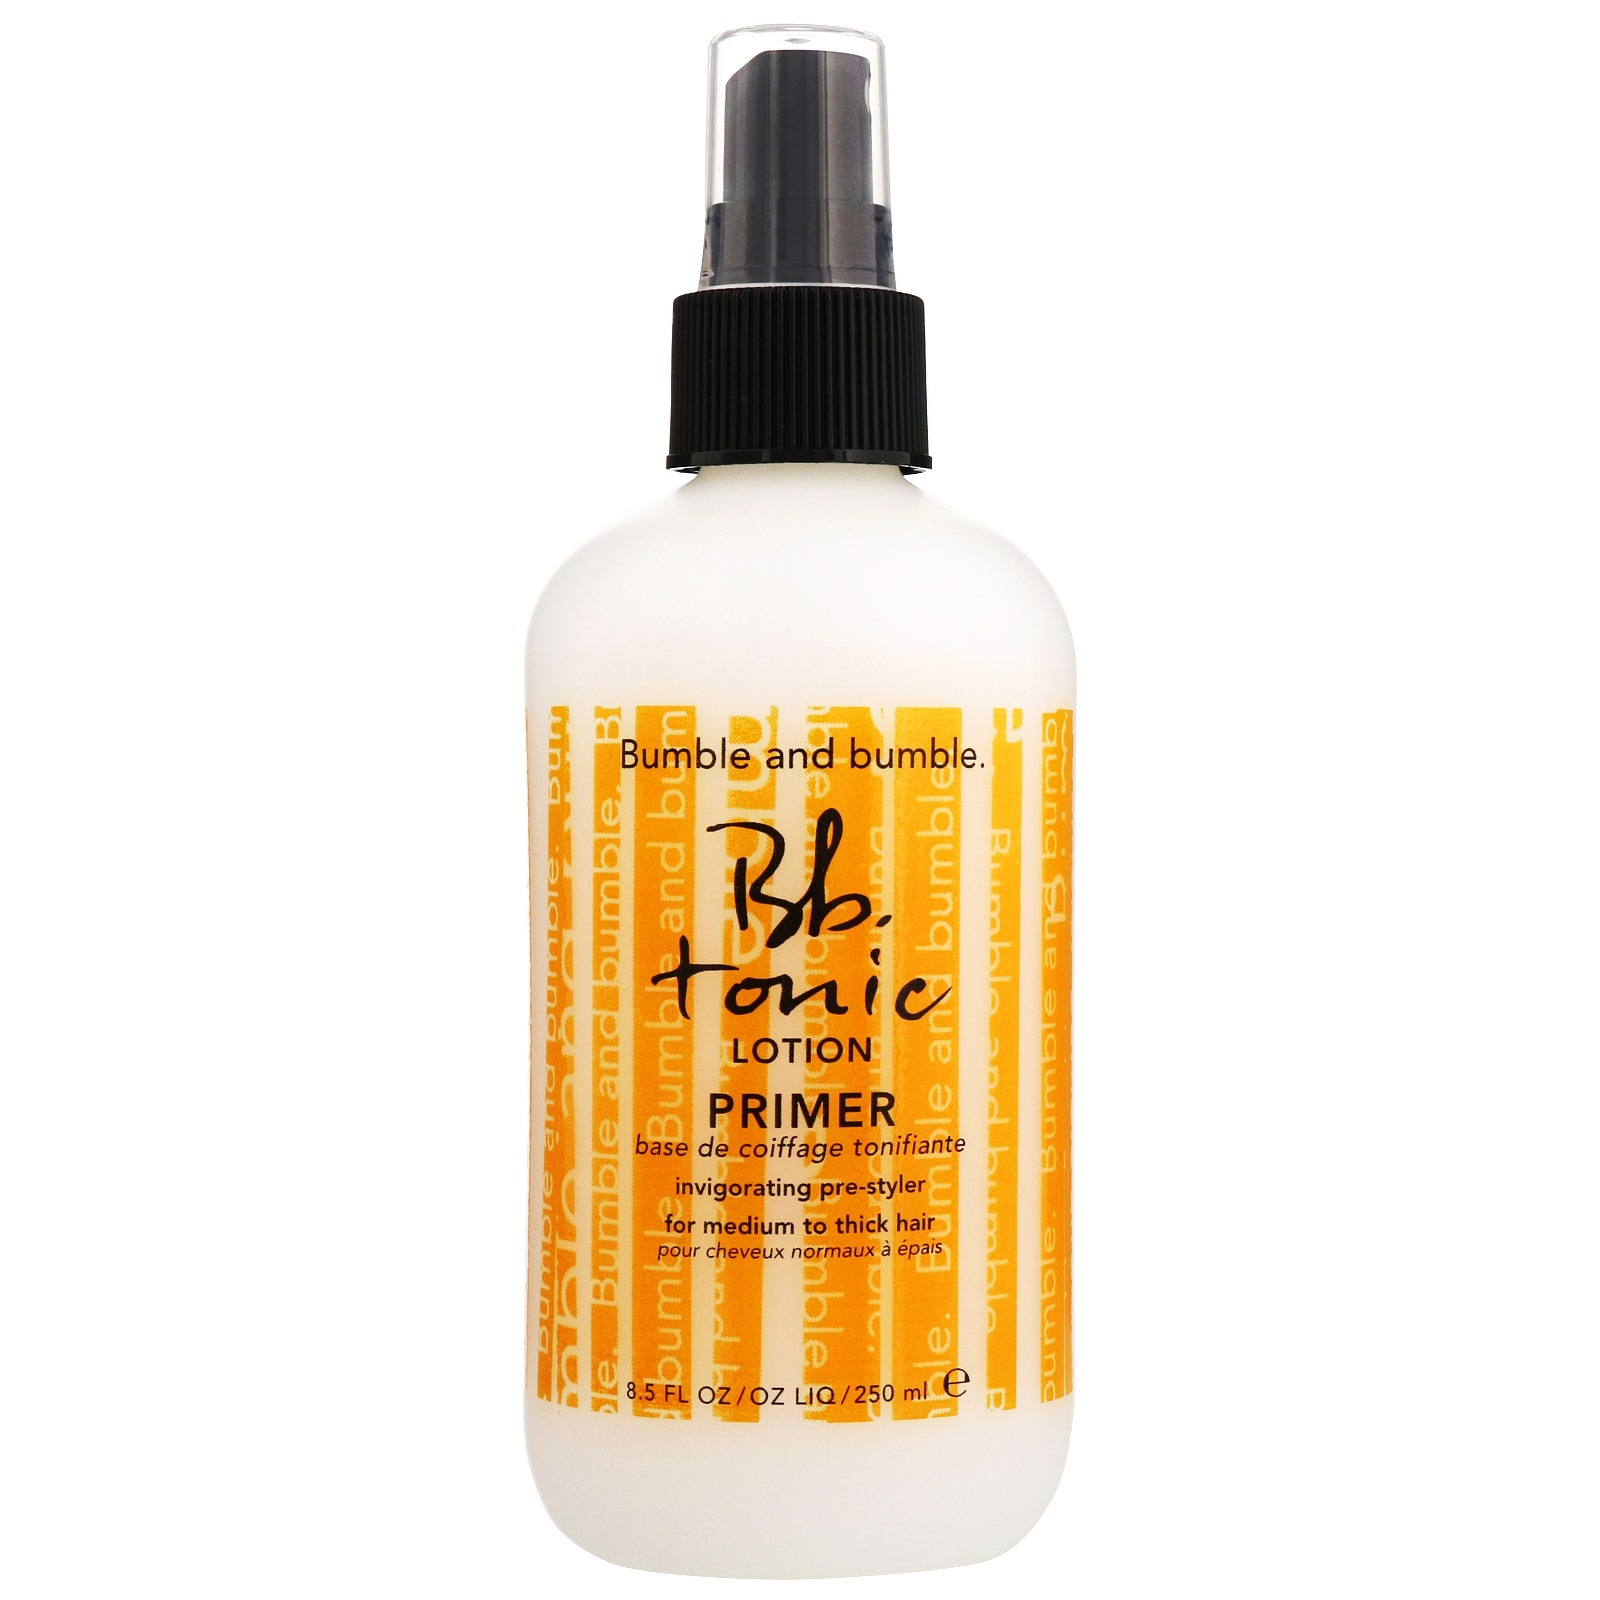 Bumble and bumble Primer Tonic Lotion Spray 250ml